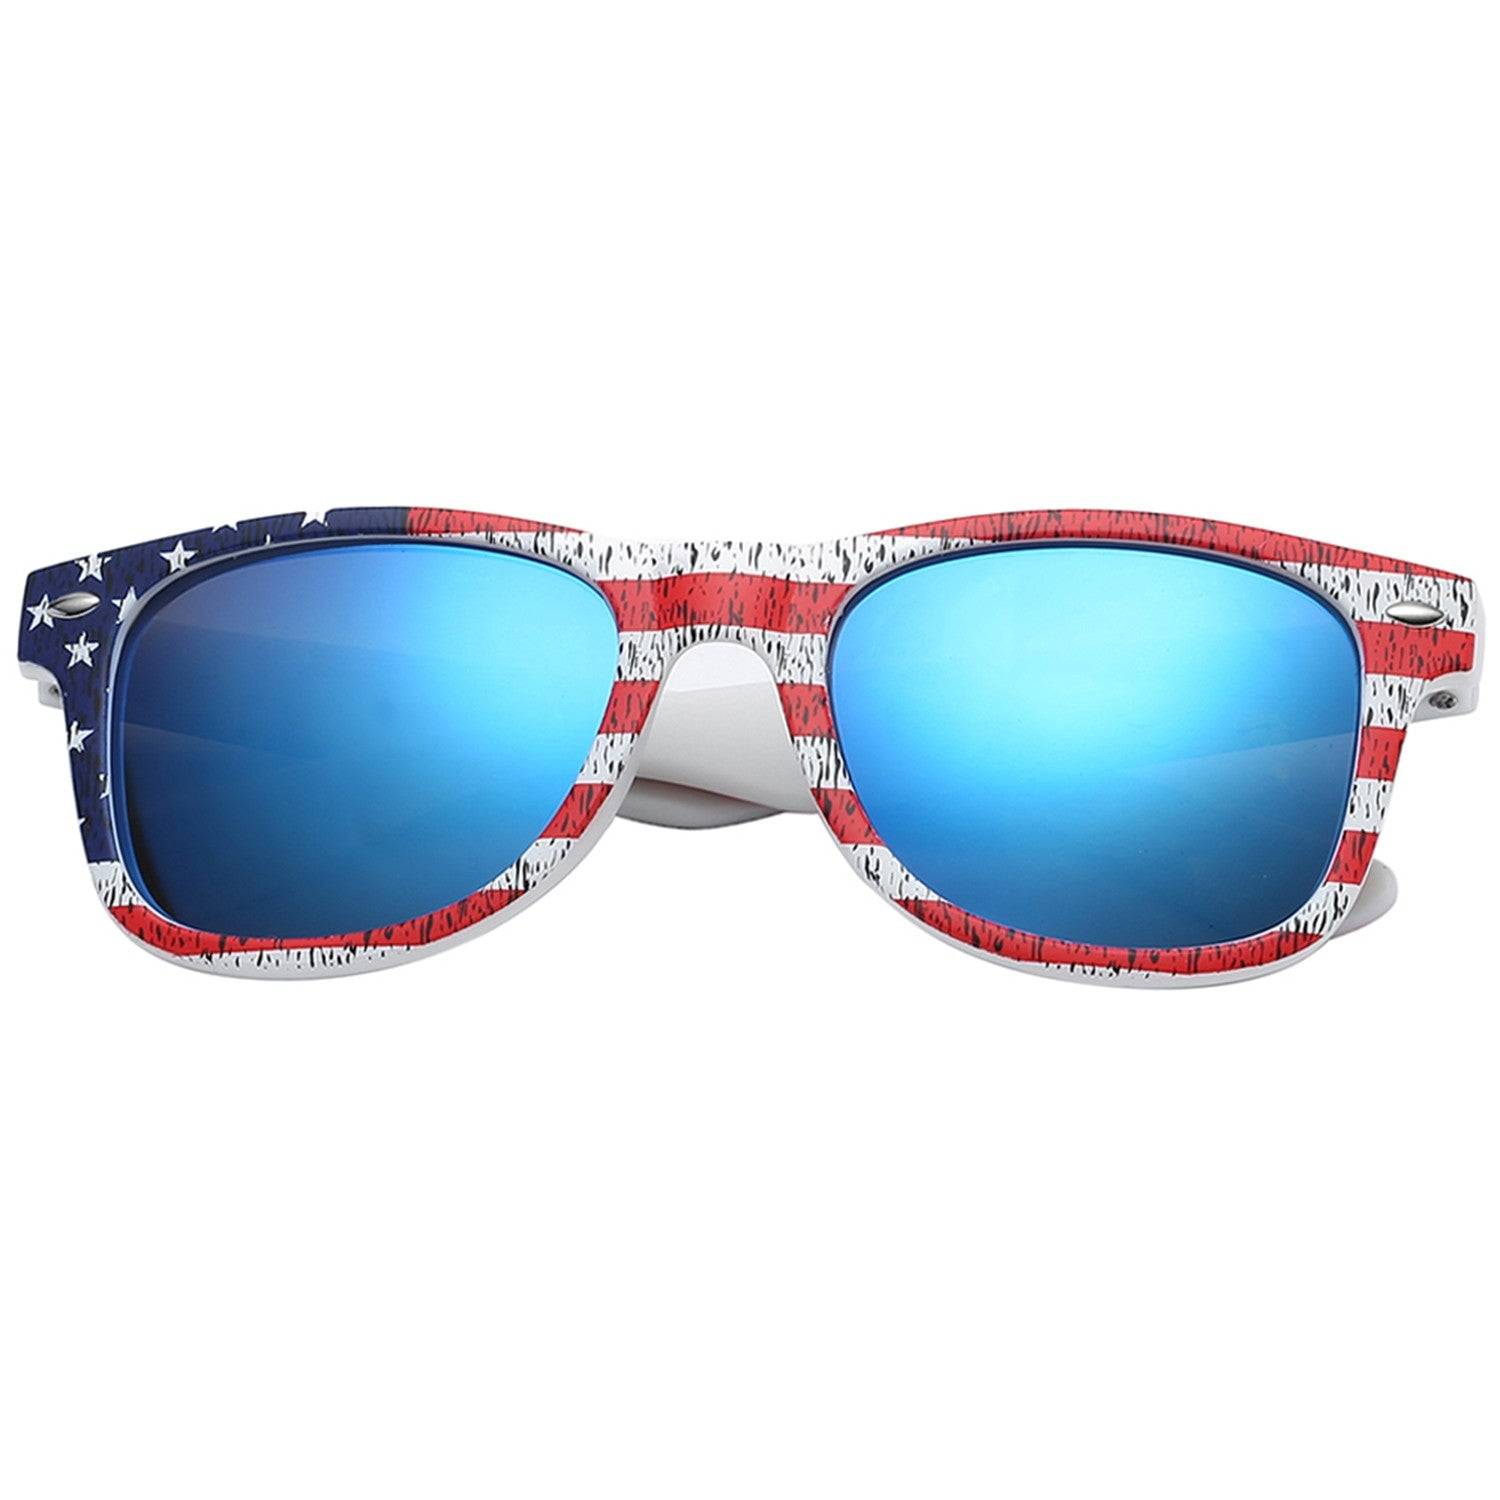 Polarspex Polarized 80's Retro Style Kids Sunglasses with American Flag Frames and Polarized Ice Blue Lenses for Boys and Girls